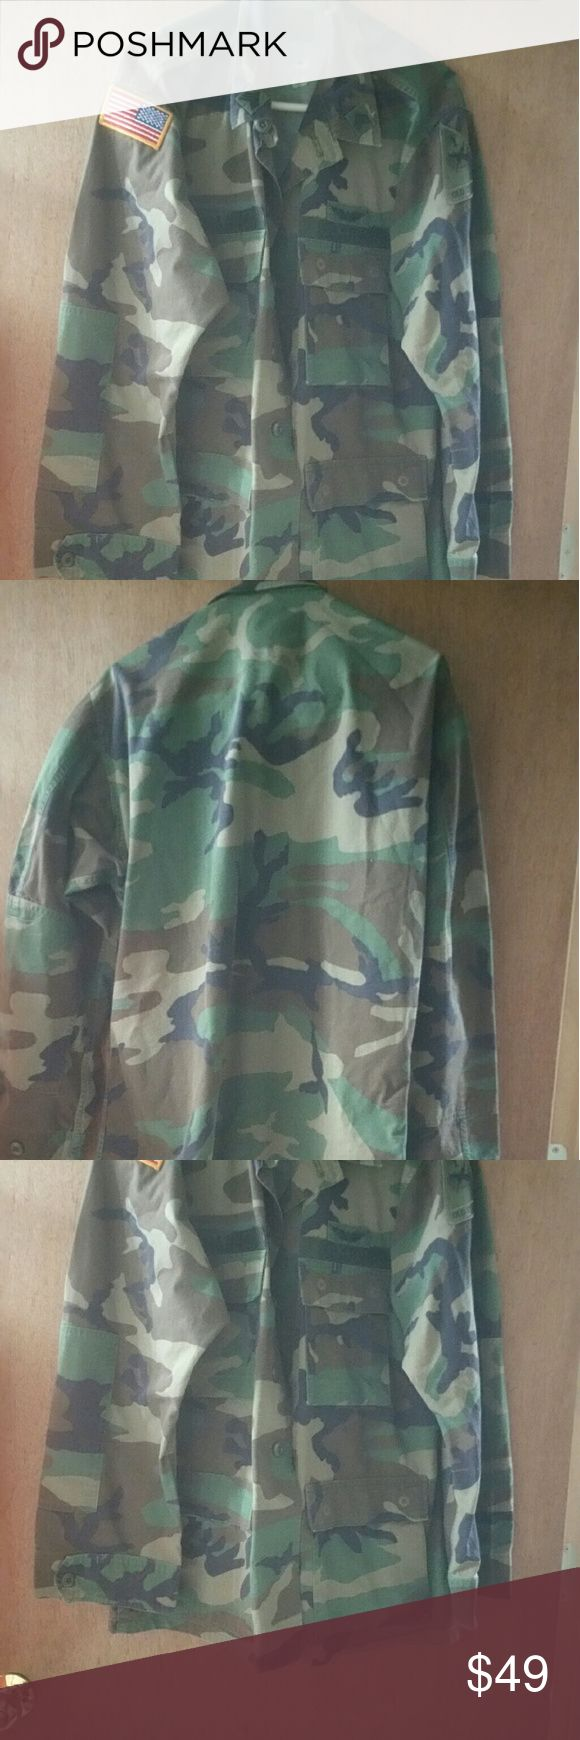 $ Drop! Camo Military jacket shirt L mens L mens TEMPORARILY REDUCED !  Great shape! Has patches american flag, old ironside, us army. Unisex, can wear it many ways with pride! :) Price firm No trades! Jackets & Coats Lightweight & Shirt Jackets